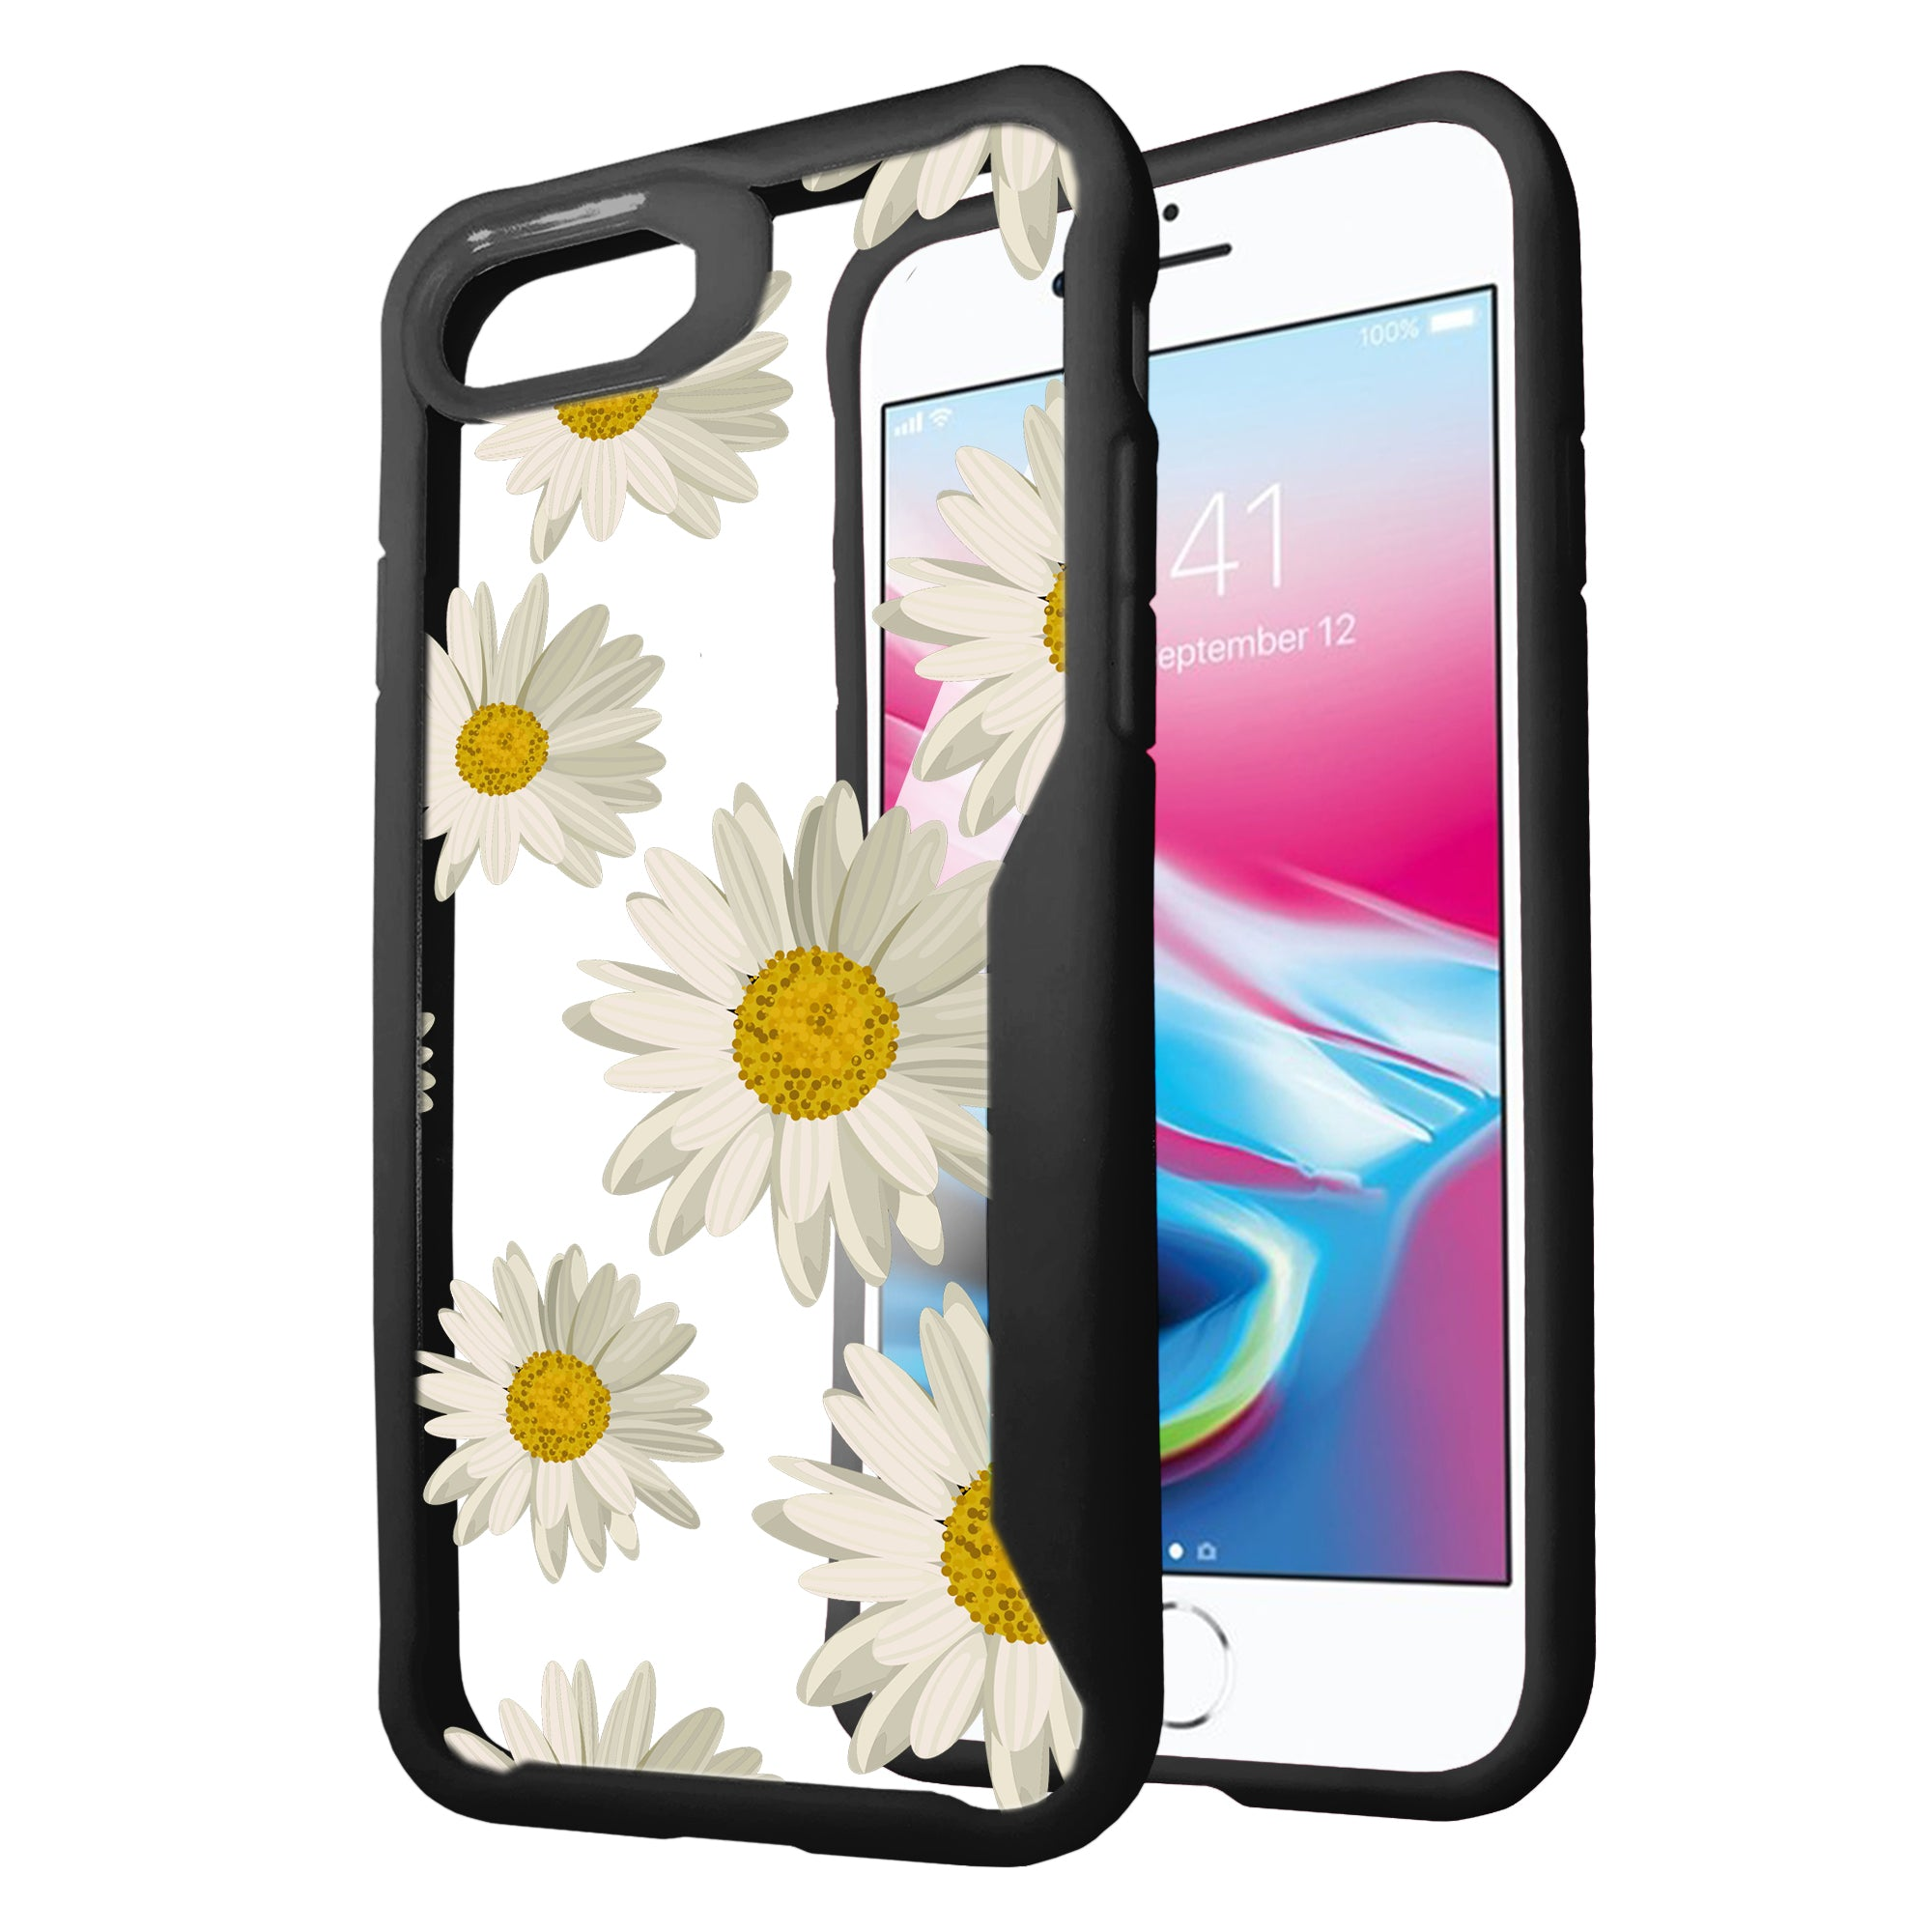 For-Apple-iPhone-8-Plus-Clear-Case-with-Black-Silicone-Edges-Floral-Design thumbnail 9